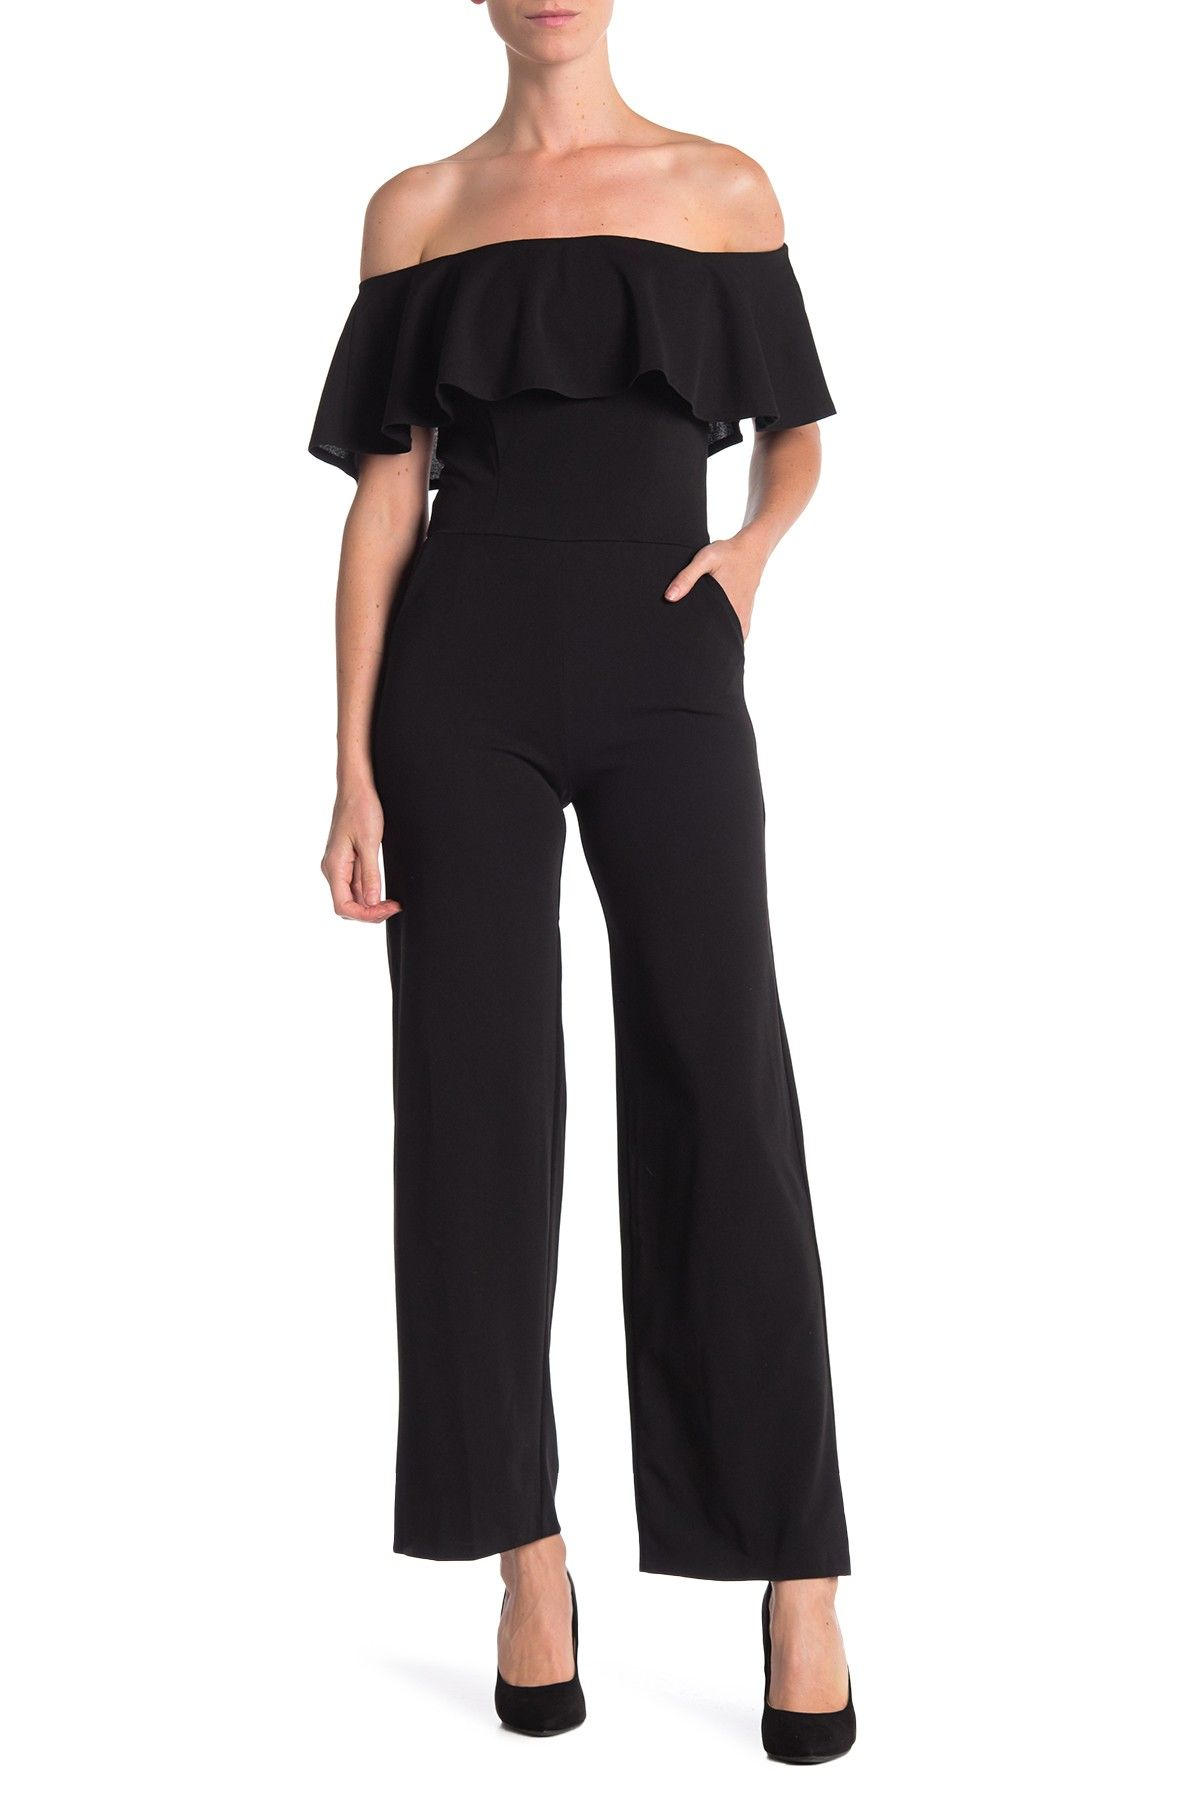 60470f5b7ac Ruffled Off-the-Shoulder Jumpsuit by Love...Ady on  nordstrom rack